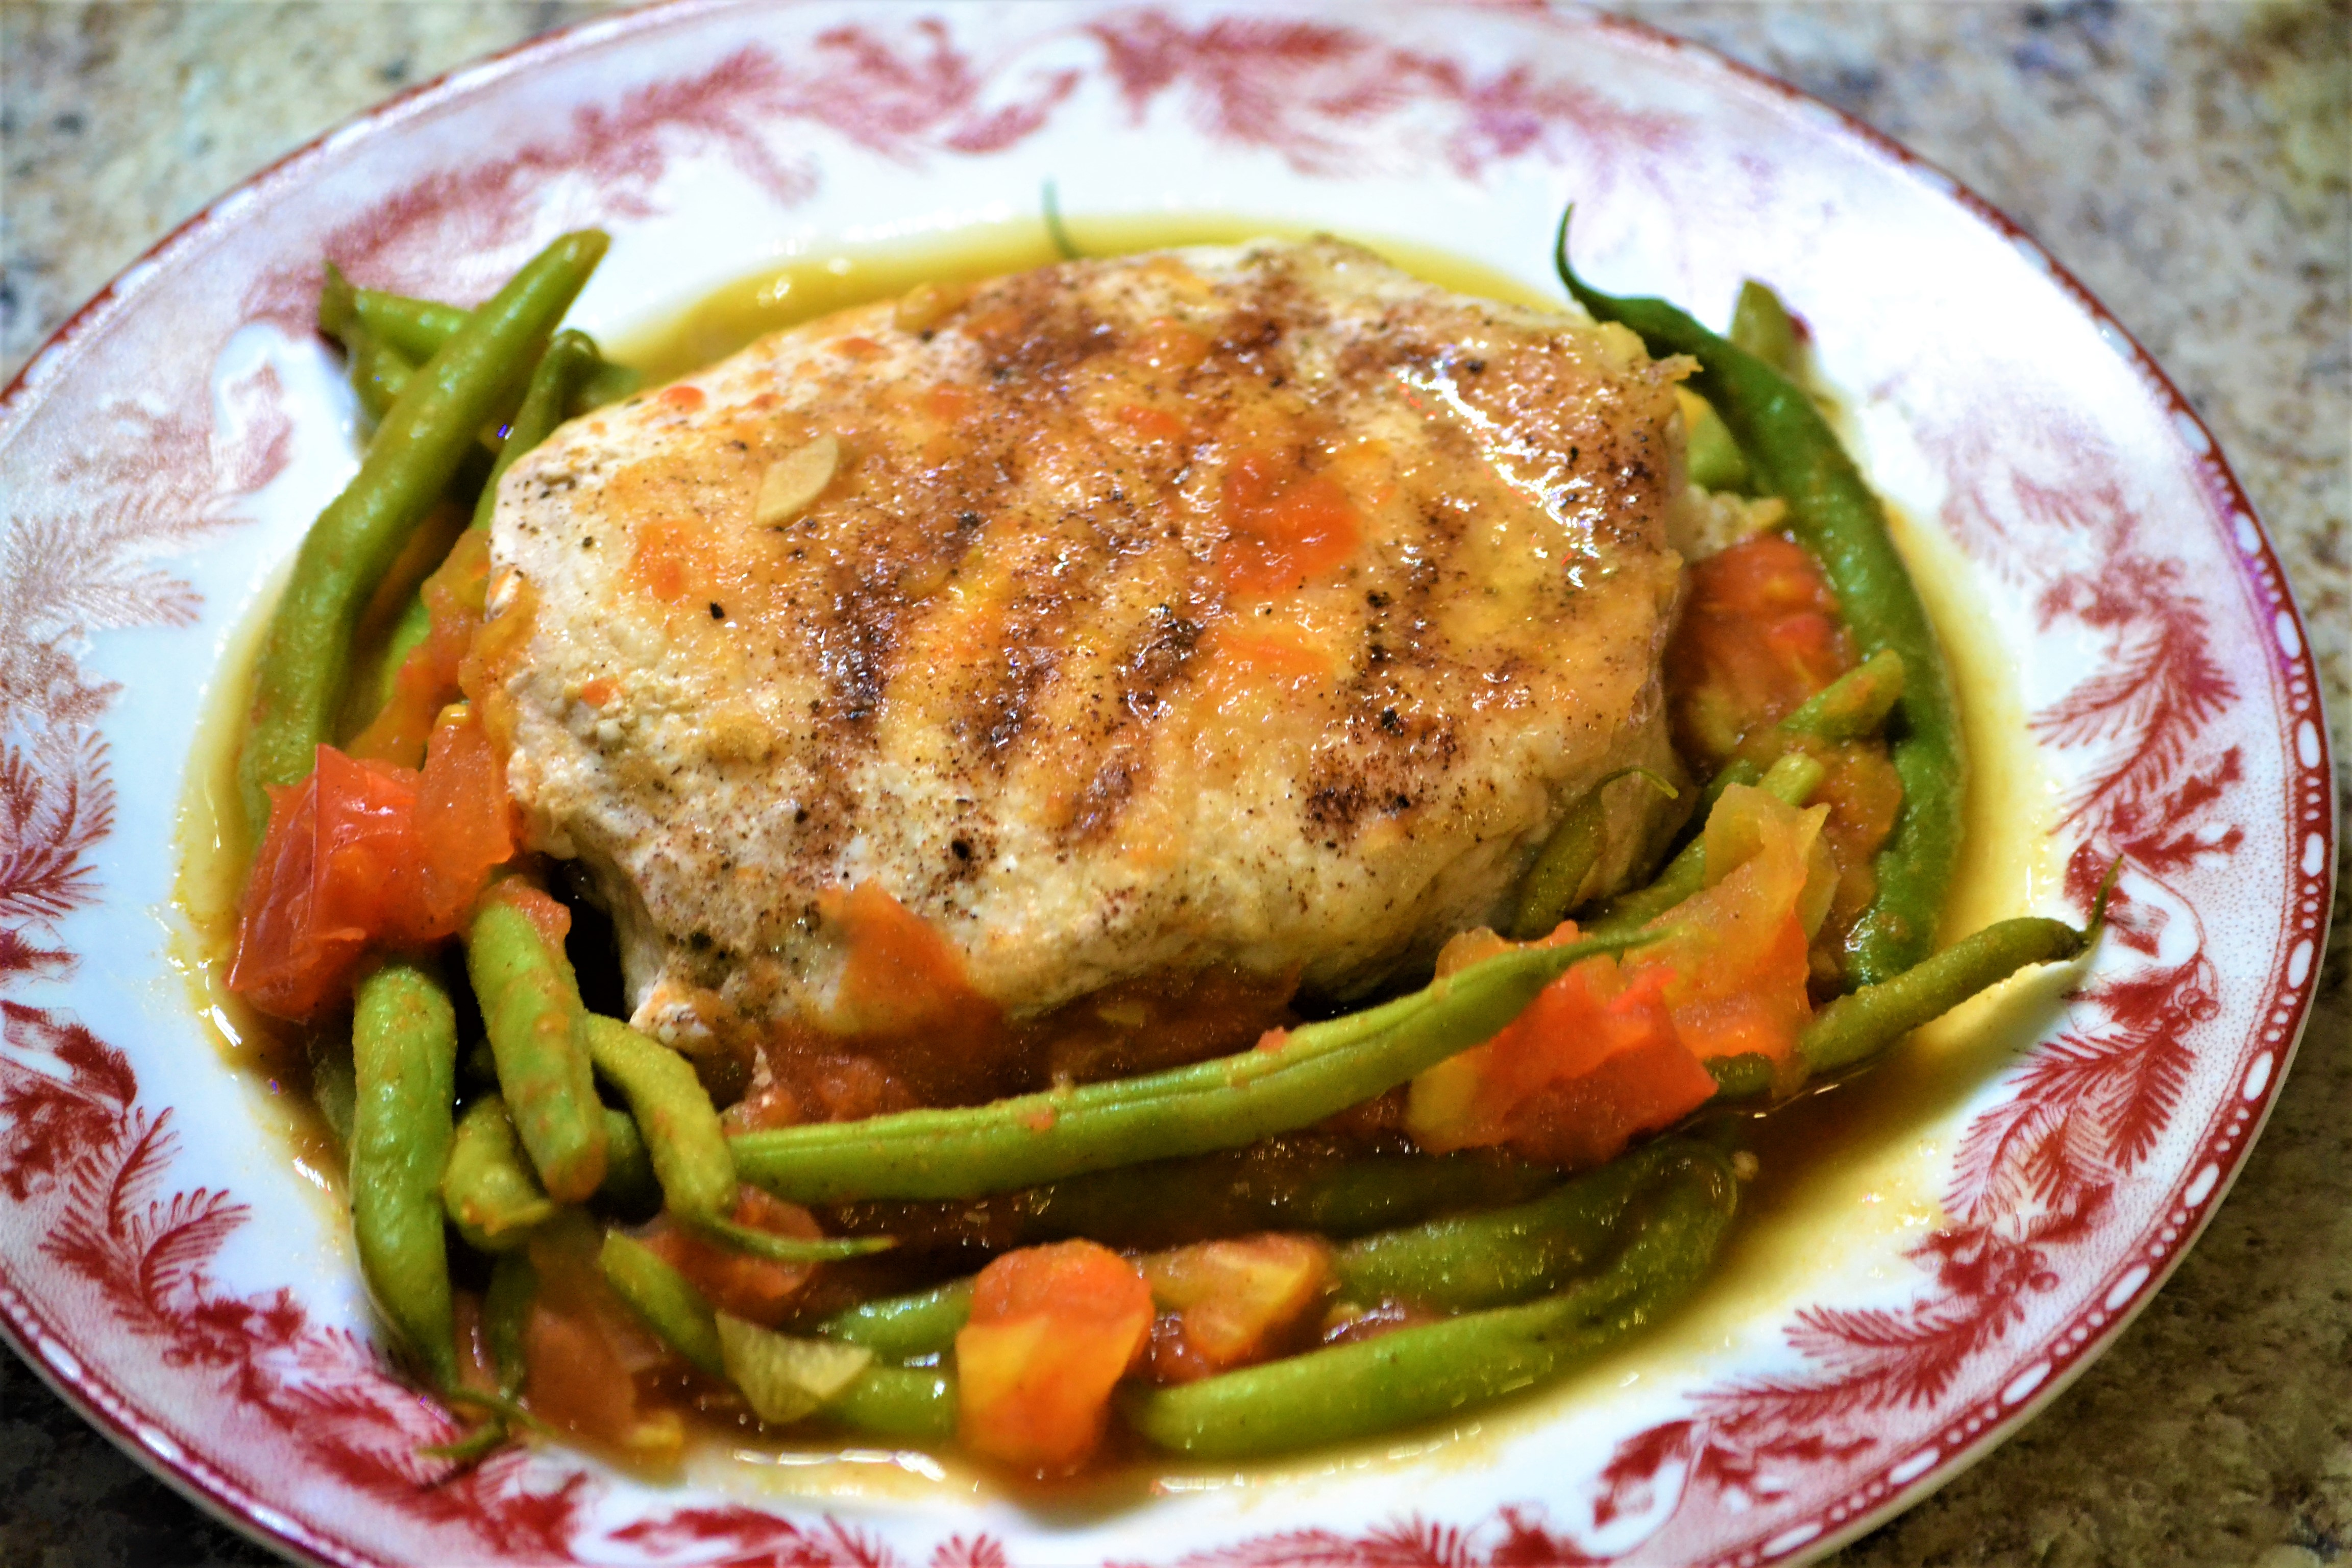 Cinnamon Pork Chops with Green Beans and Tomatoes